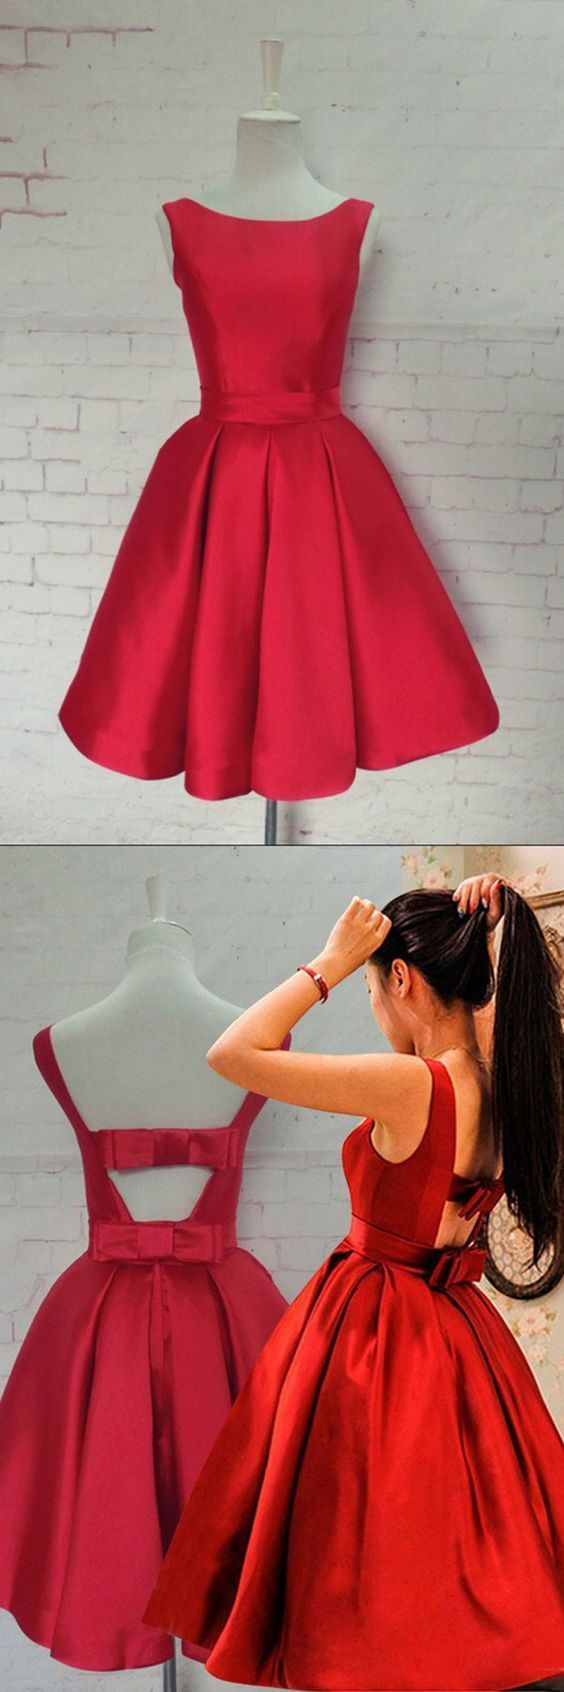 Uhc0022, Red Homecoming Gowns,New prom Dresses,short Prom gowns,sweet 16 dress,backless homecoming gown dresses